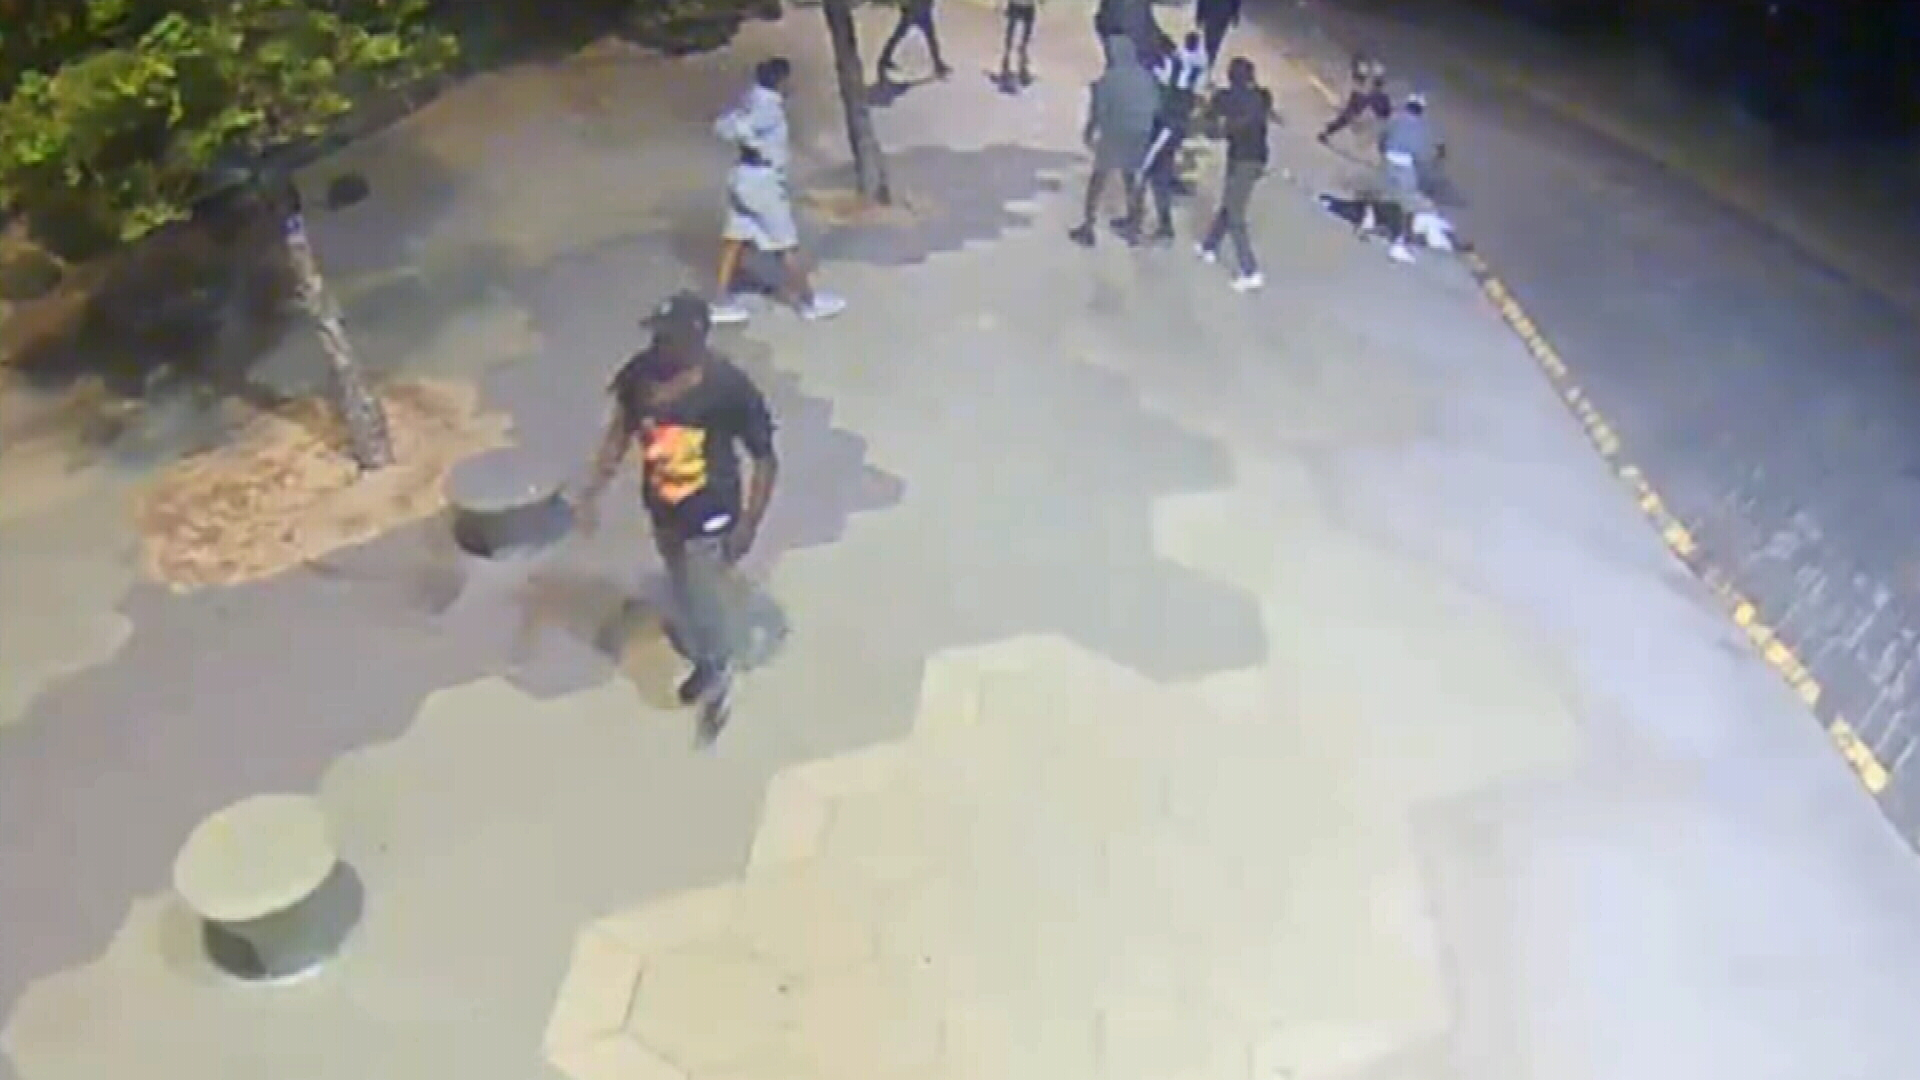 Search for gang who left men unconscious